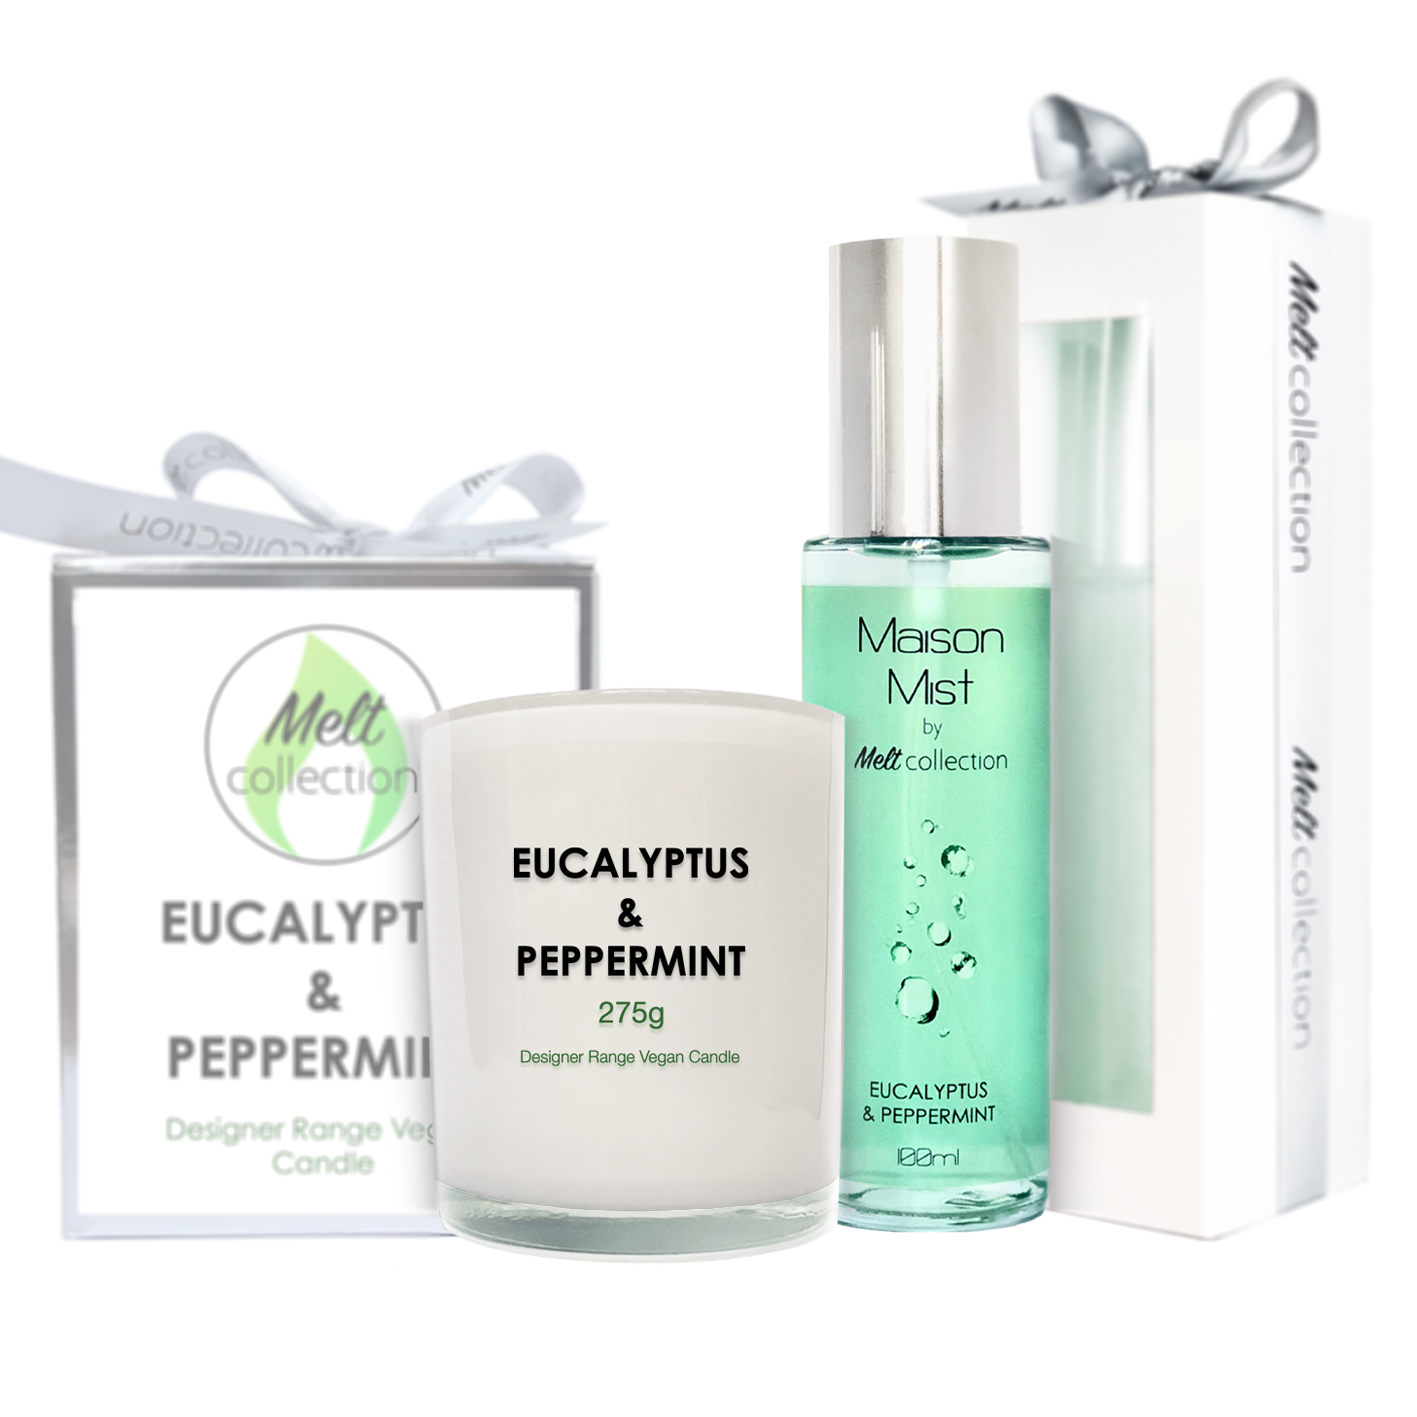 Eucalyptus & Peppermint Duo